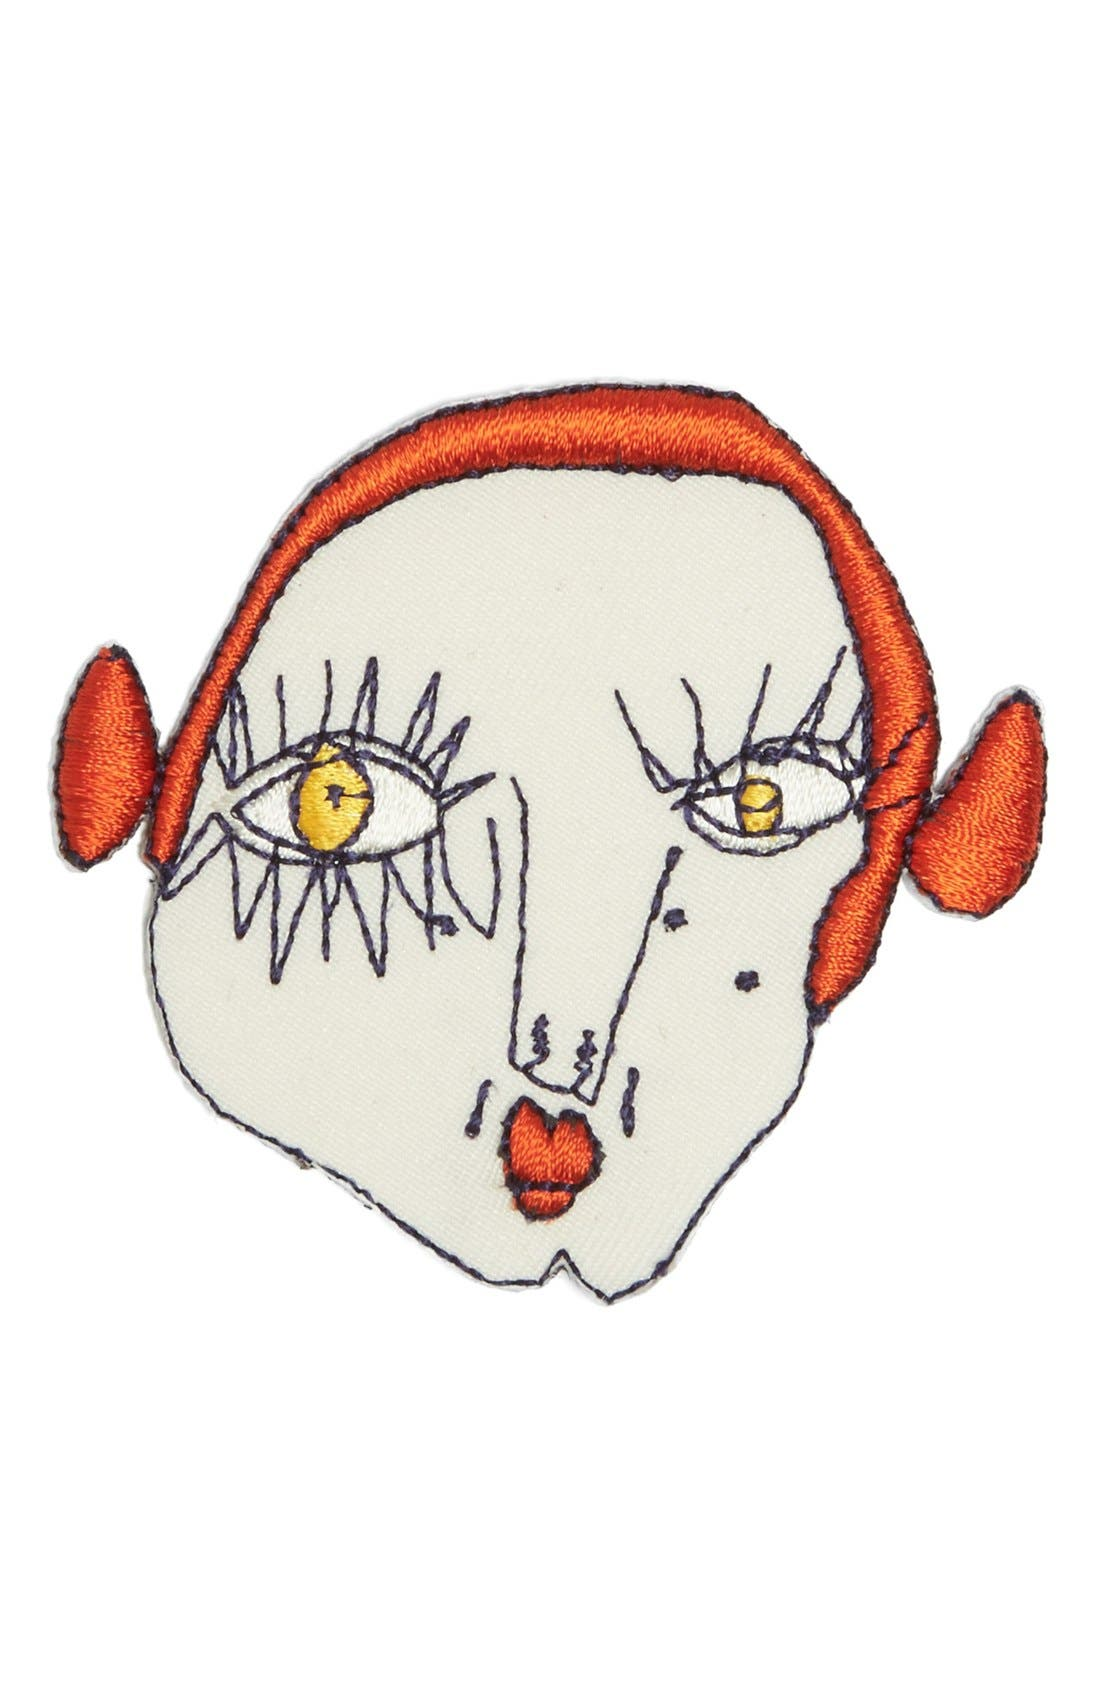 Alternate Image 1 Selected - Shrimps TBD Embroidered Fashion Accessory Patch